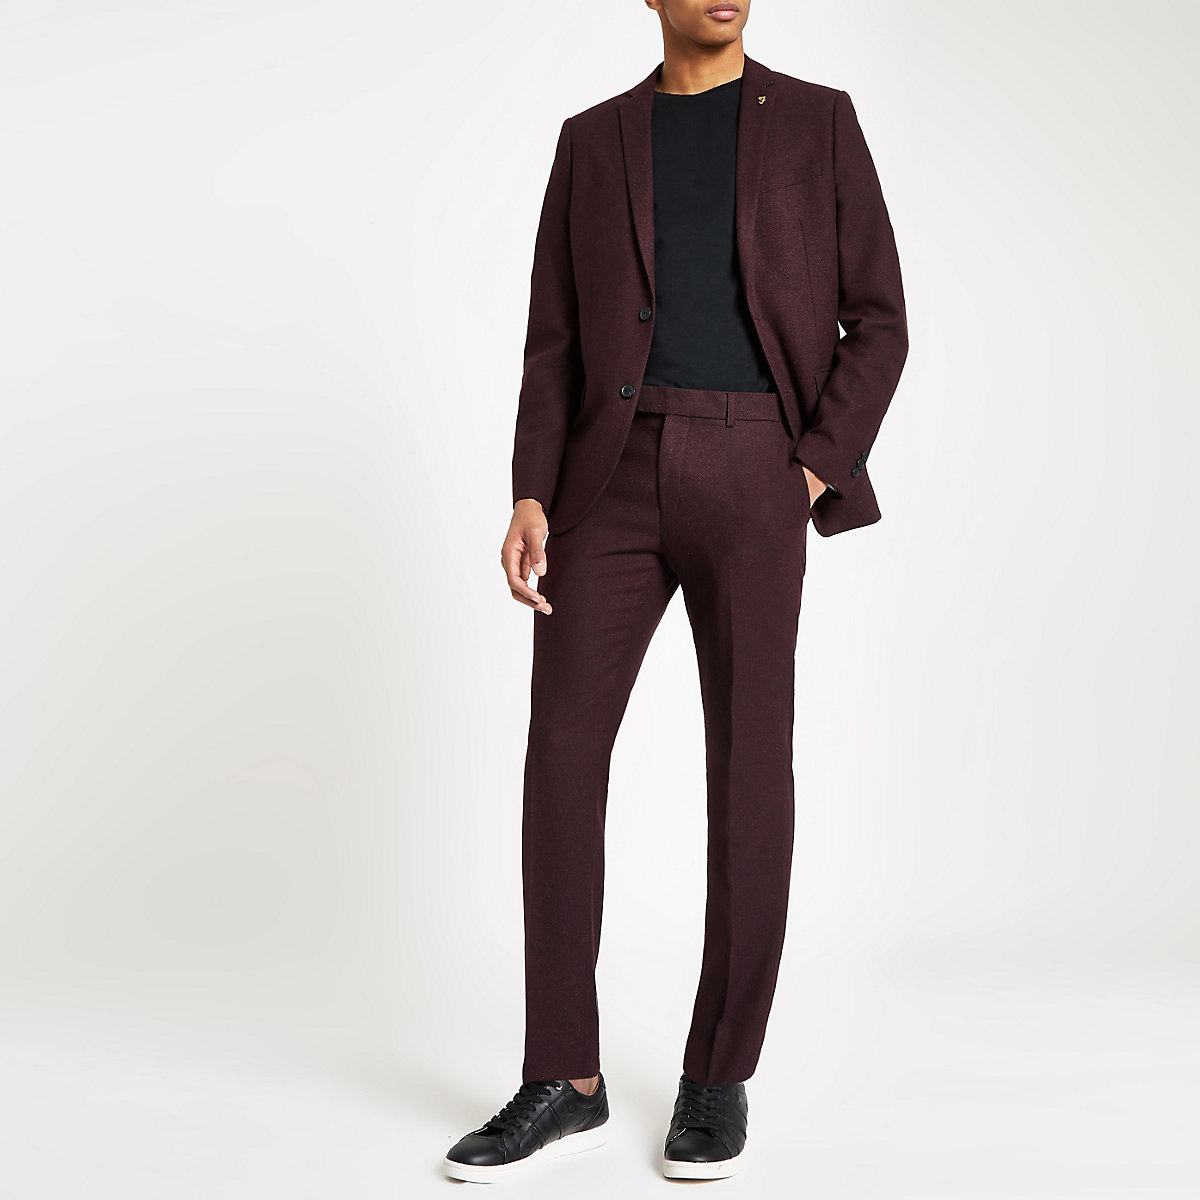 Farah burgundy skinny suit trousers